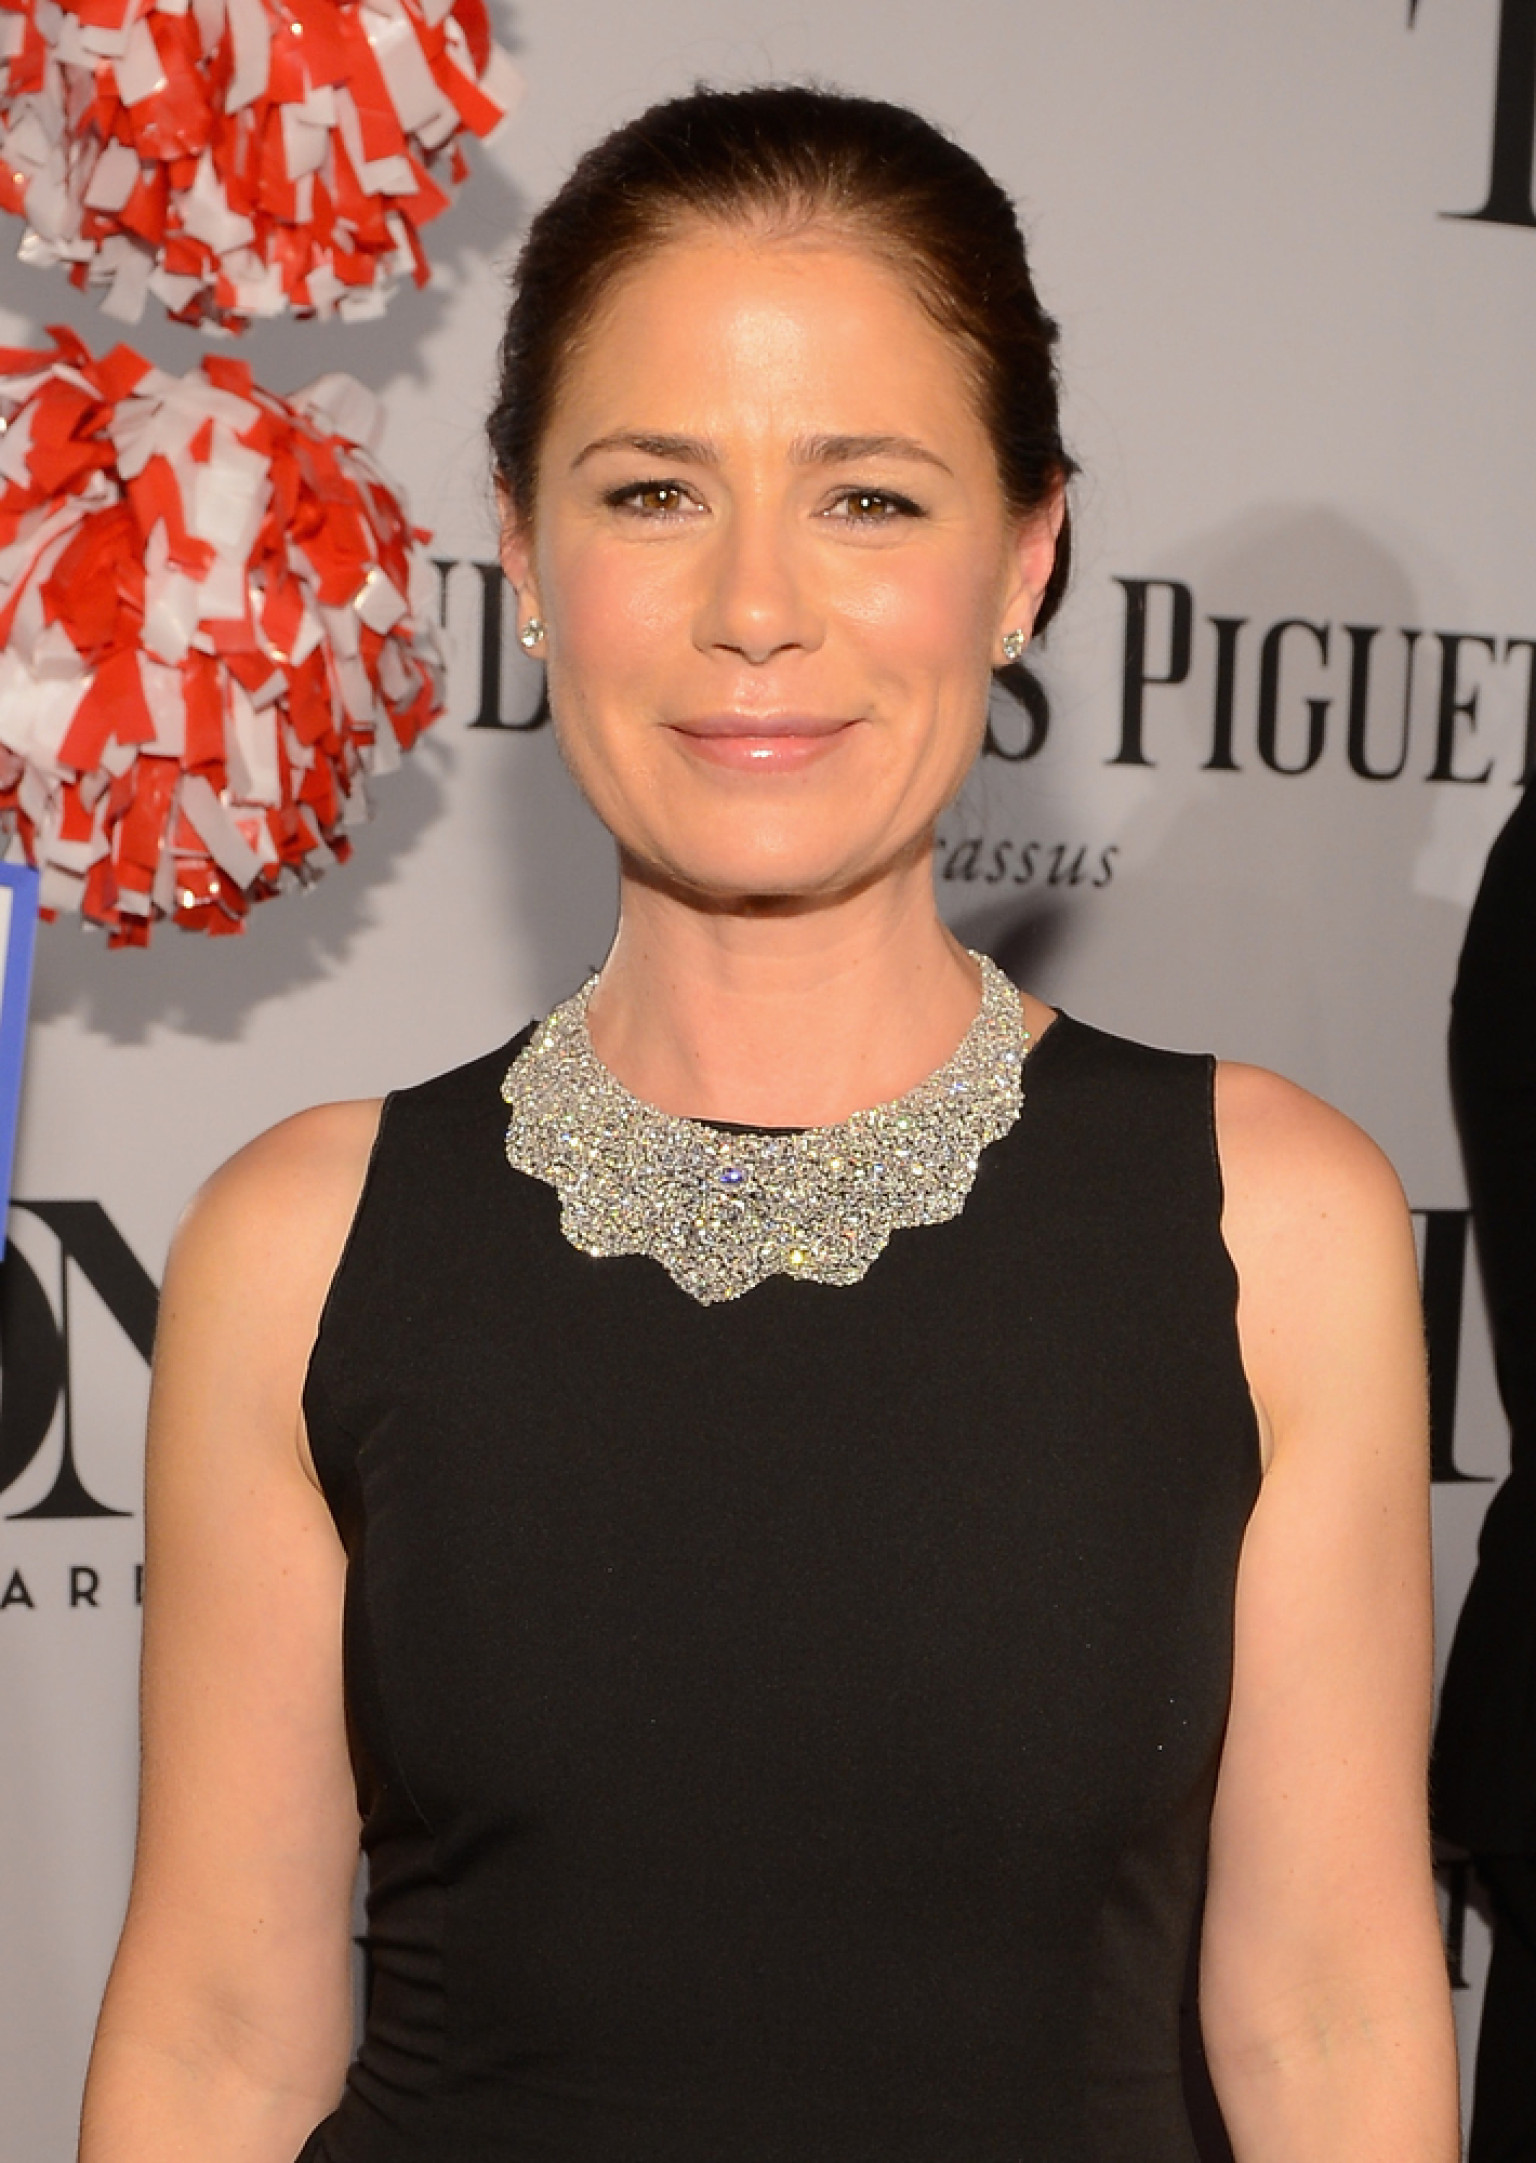 maura tierney patty dukemaura tierney young, maura tierney 2016, maura tierney jennifer aniston, maura tierney actress, maura tierney pic, maura tierney breast cancer, maura tierney wikipedia, maura tierney film, maura tierney patty duke, maura tierney biography, maura tierney twitter, maura tierney instagram, maura tierney who dated who, maura tierney net worth, maura tierney child, maura tierney photo, maura tierney tv shows